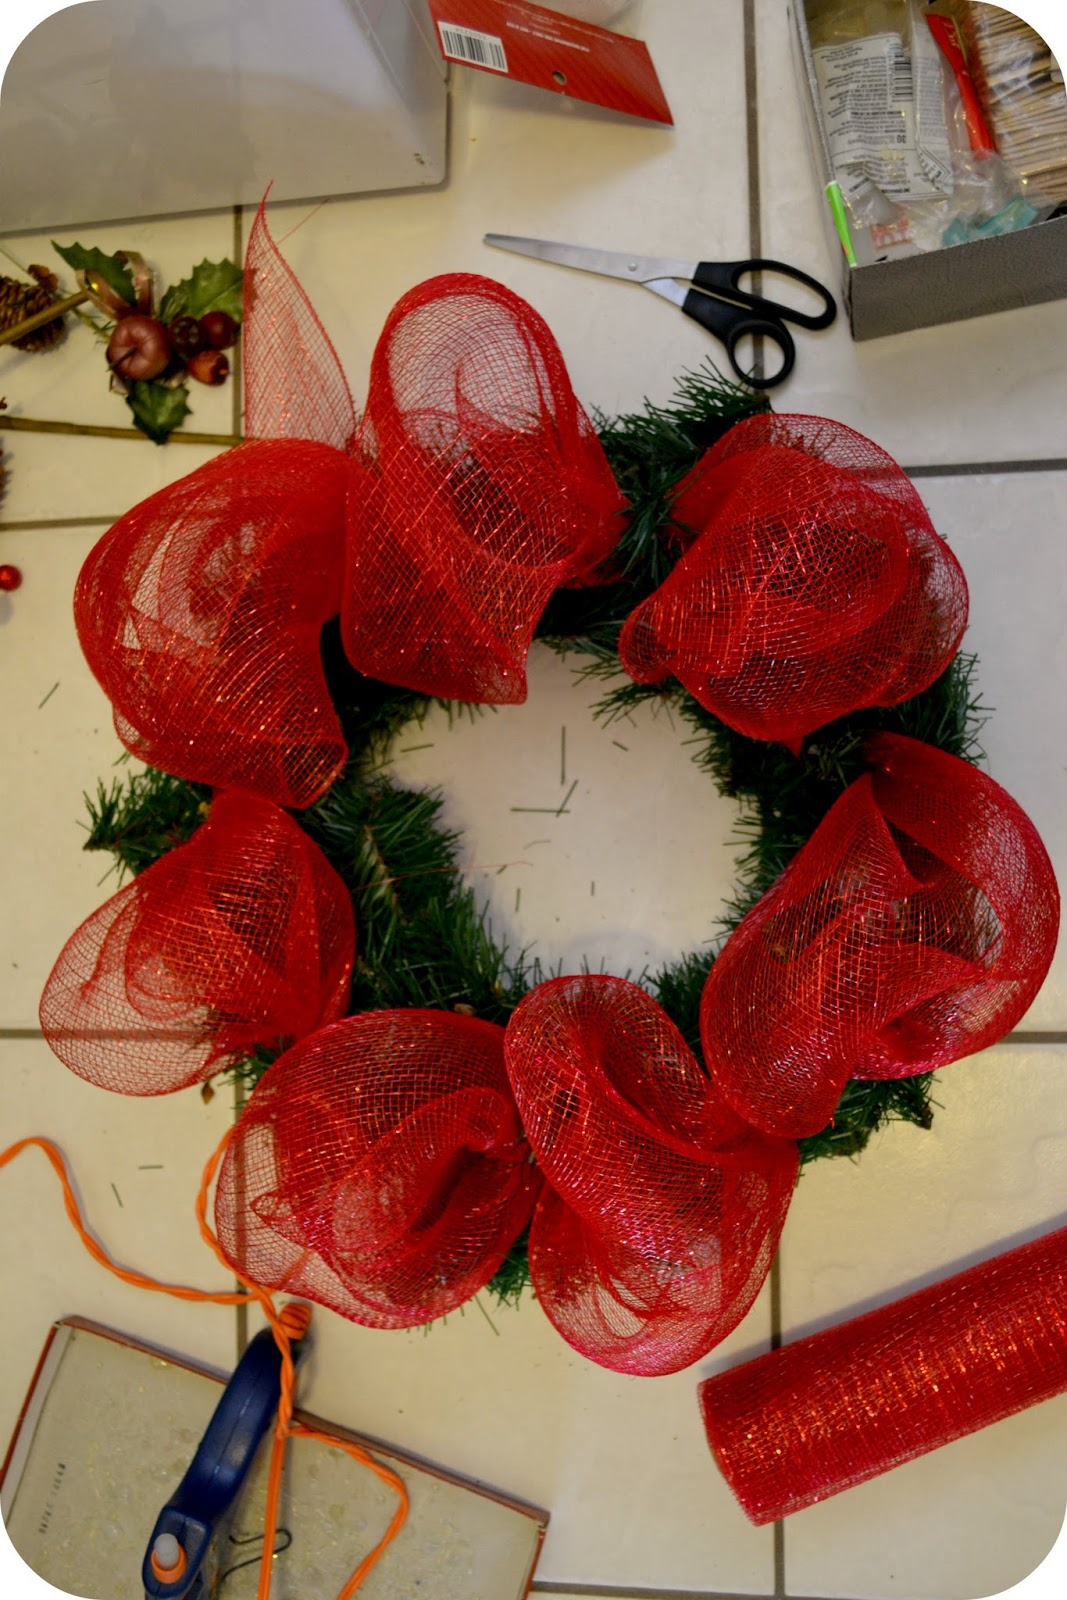 The sparacino chronicles christmas deco mesh wreath tutorial i fired up my hot glue gun and glued the glittery ornaments on the wreath i also had some red glittery sticks with balls on them and some decorative leaves baditri Gallery